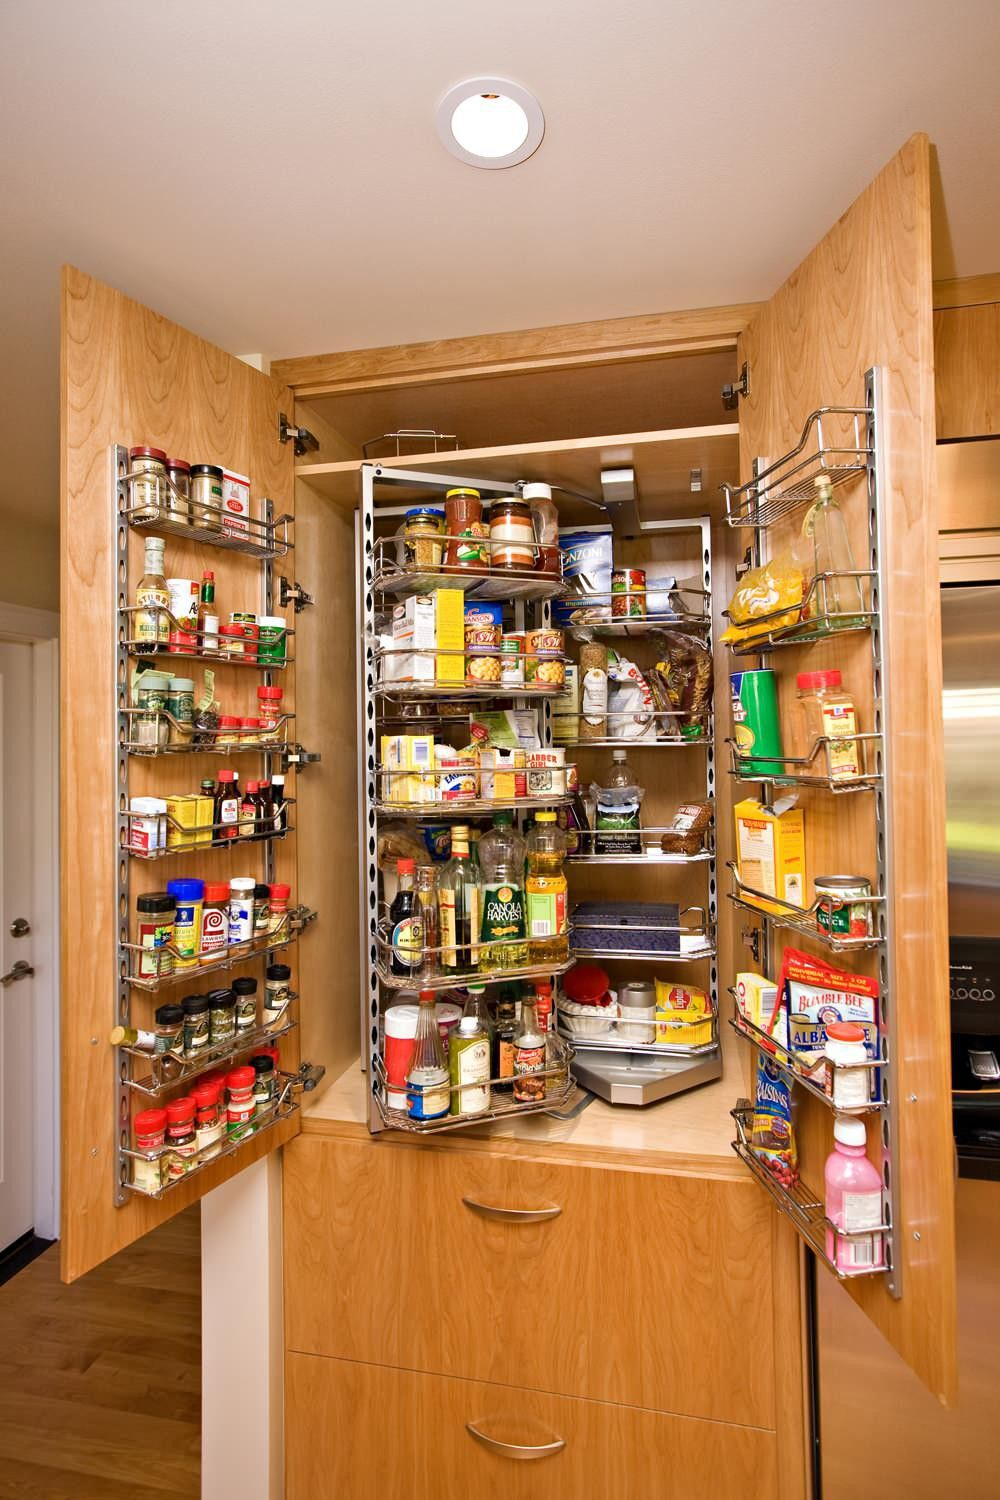 19 smart kitchen storage ideas that will impress you on clever ideas for diy kitchen cabinet organization tips for organizers id=77721